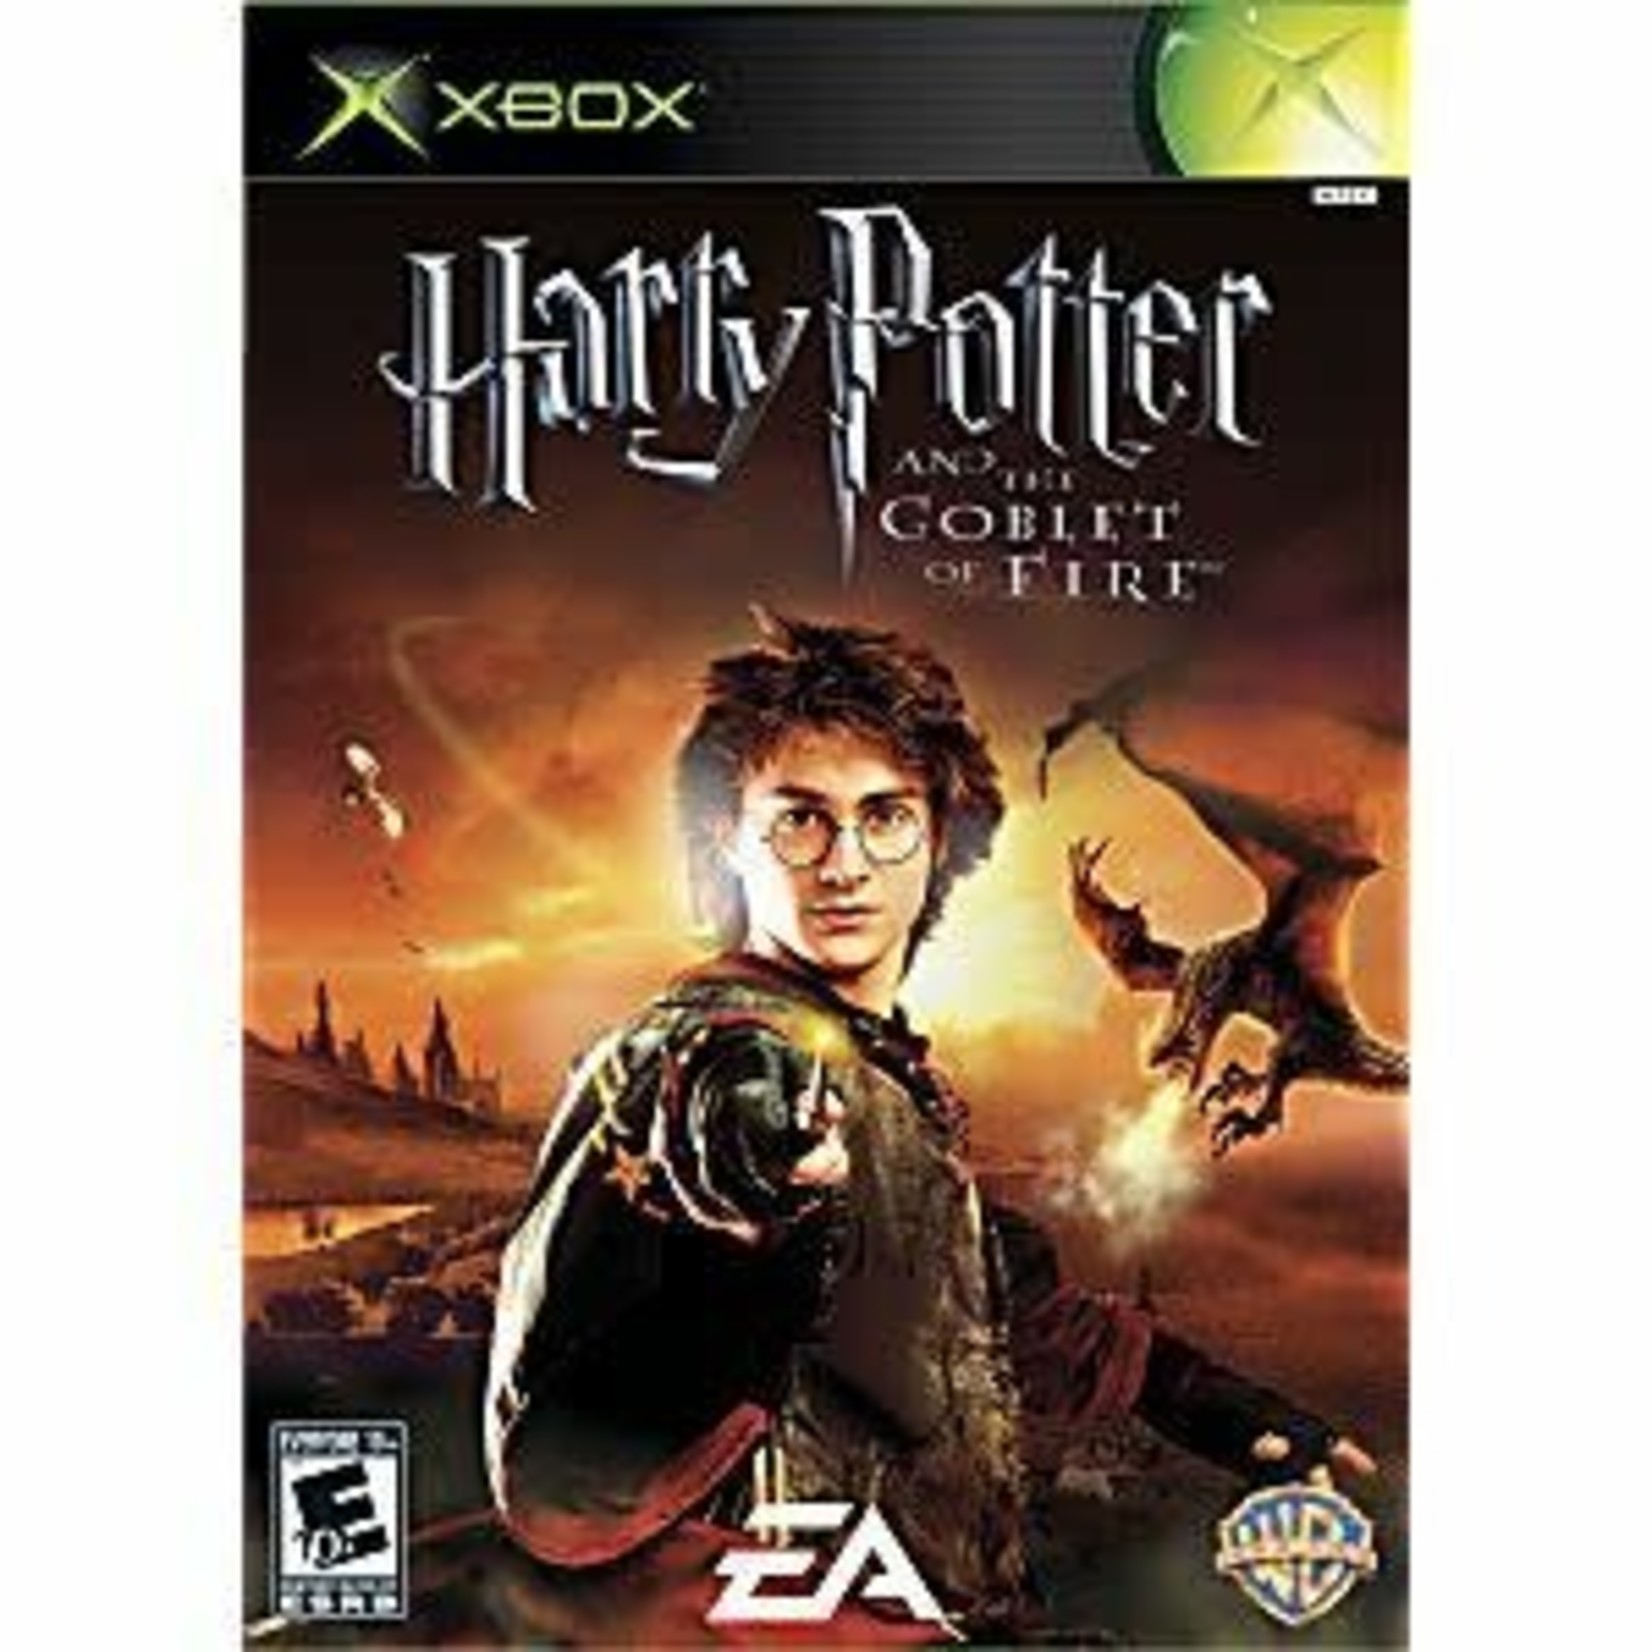 XBU-HARRY POTTER AND THE GOBLET OF FIRE